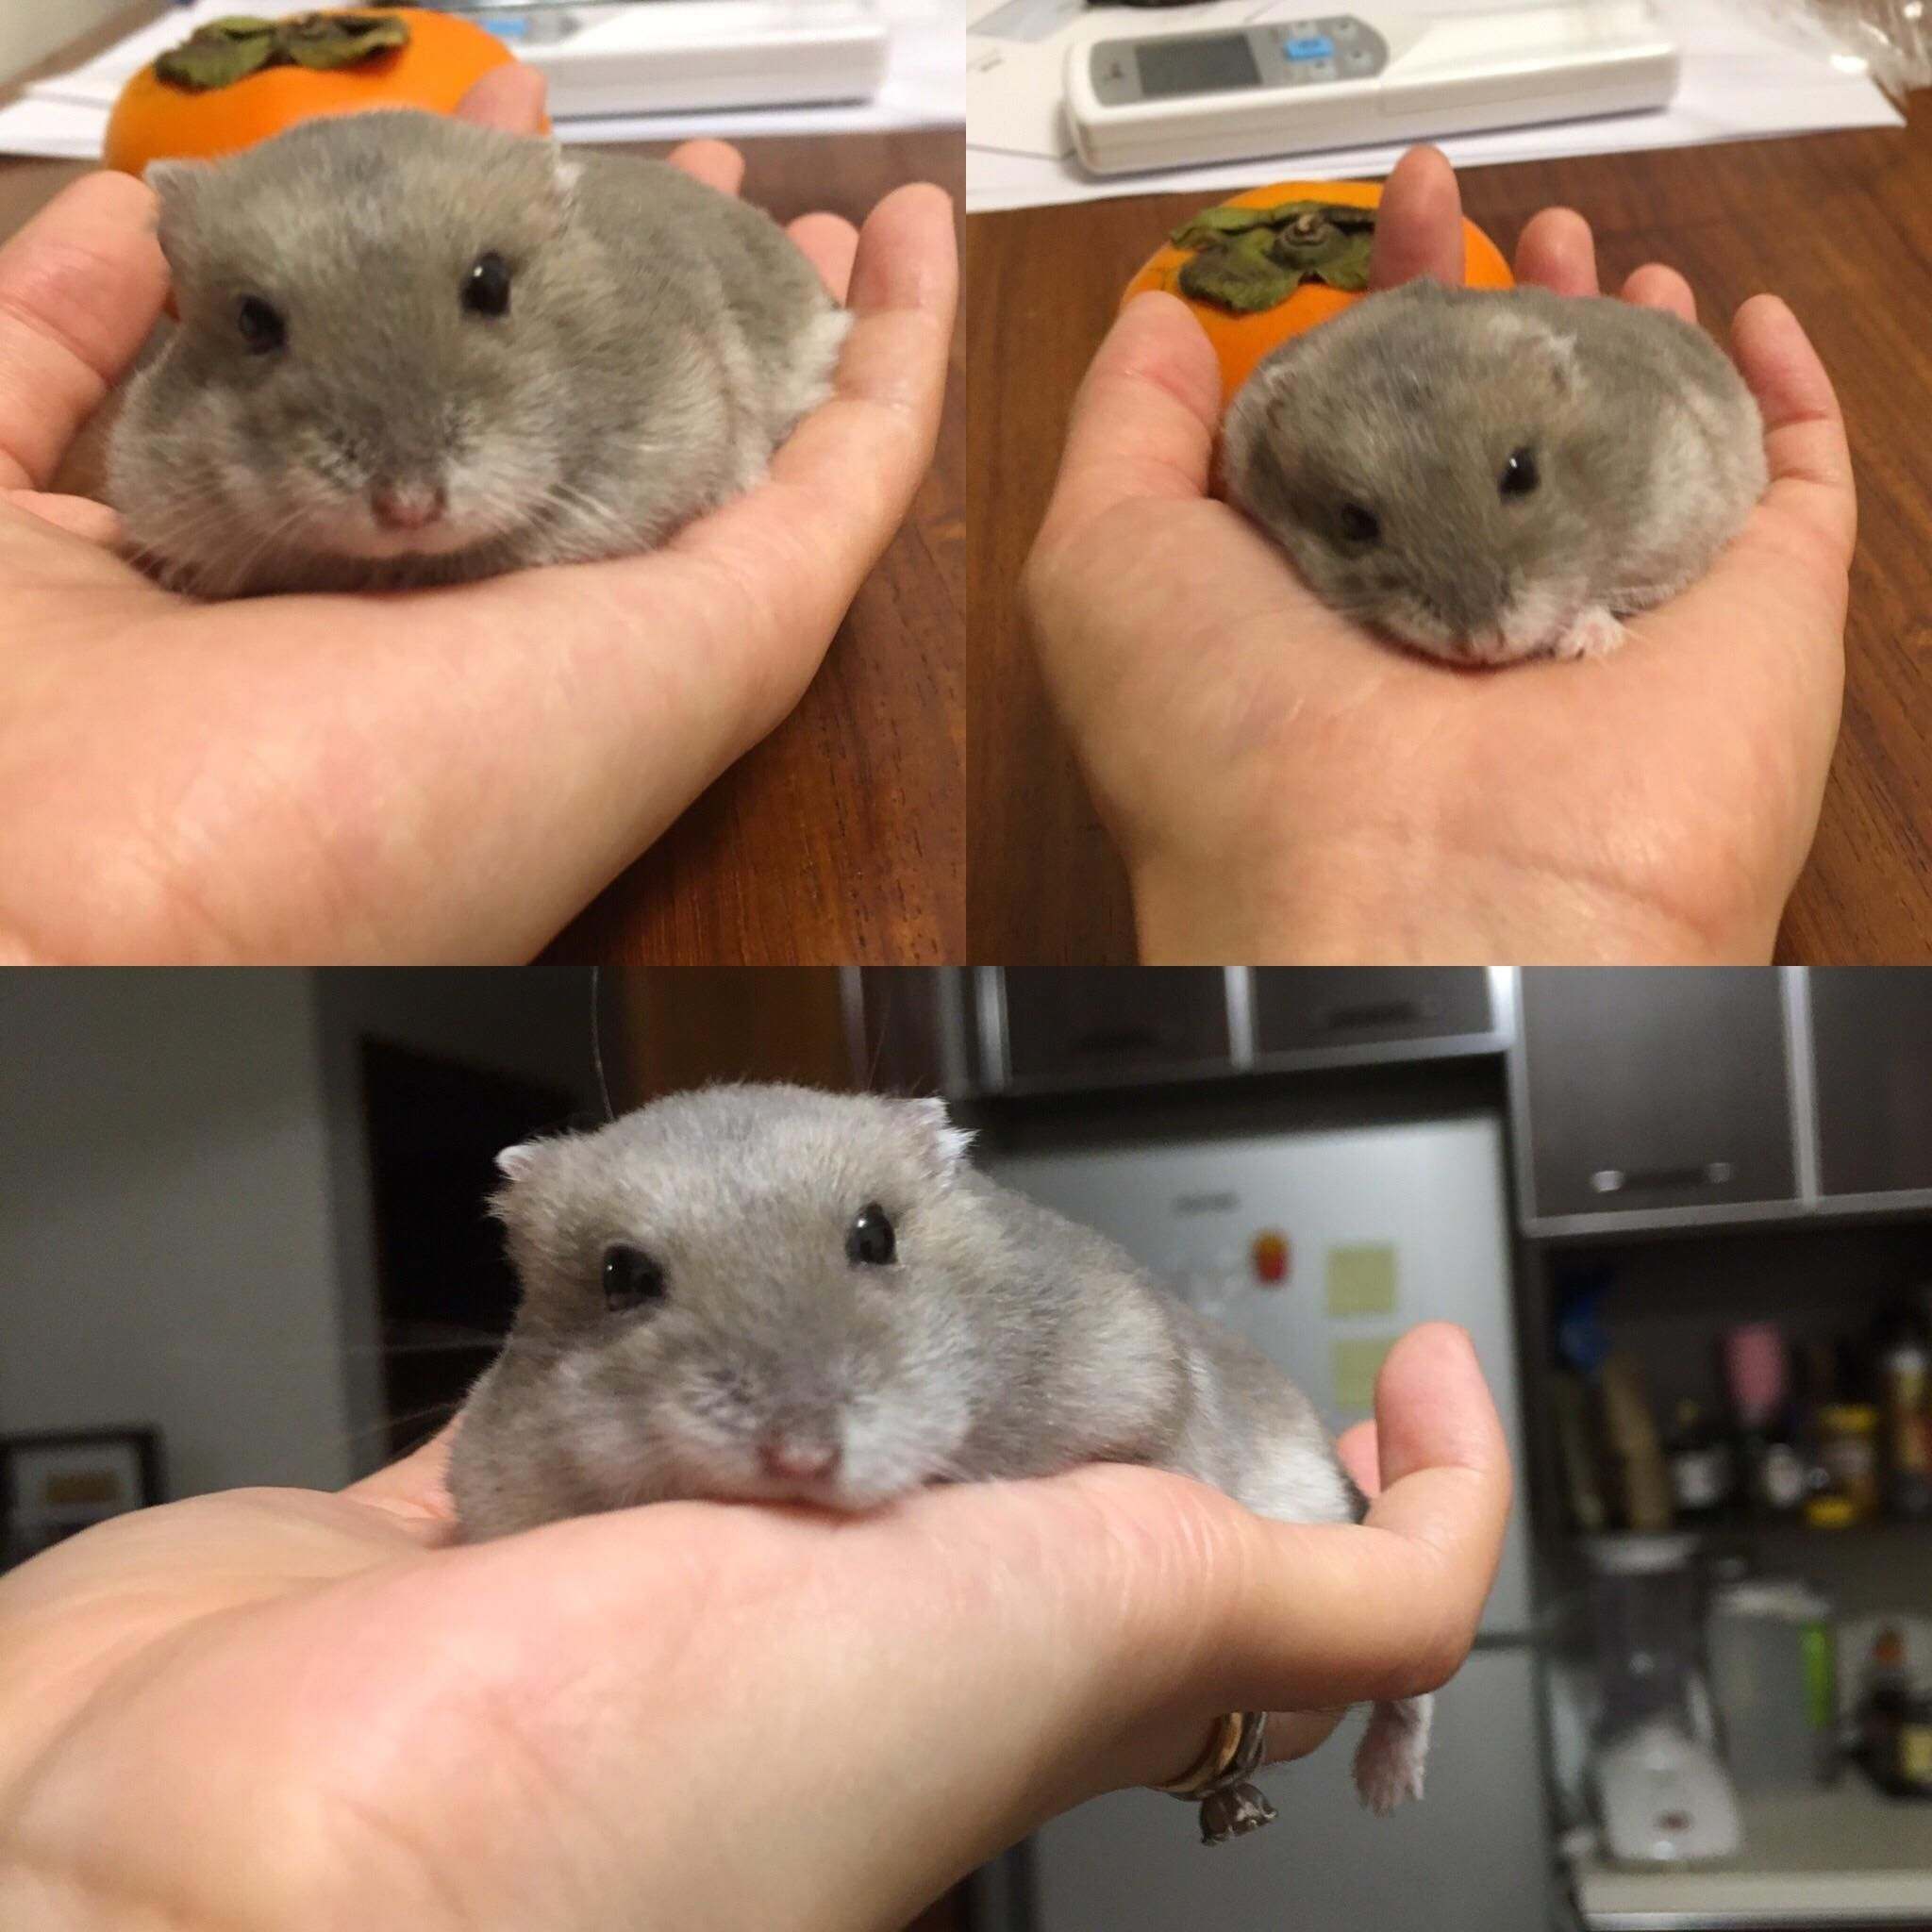 Always so flat in my hand #aww #Cutehamsters #hamster #hamstersofpinterest #boopthesnoot #cuddle #fluffy #animals #aww #socute #derp #cute #bestfriend #itssofluffy #rodents